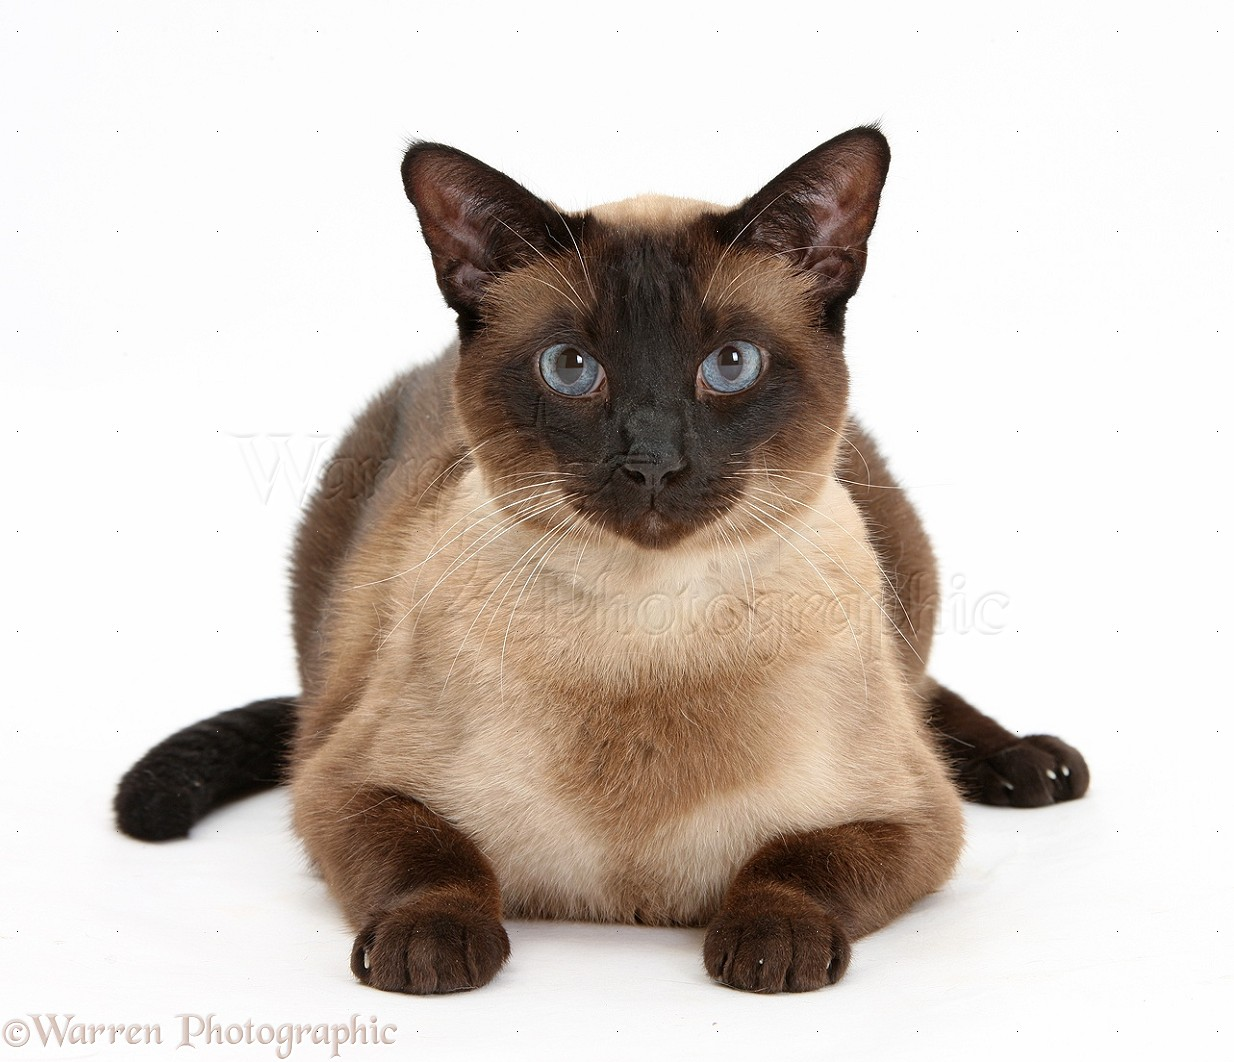 Seal point Siamese-cross cat photo - WP31534